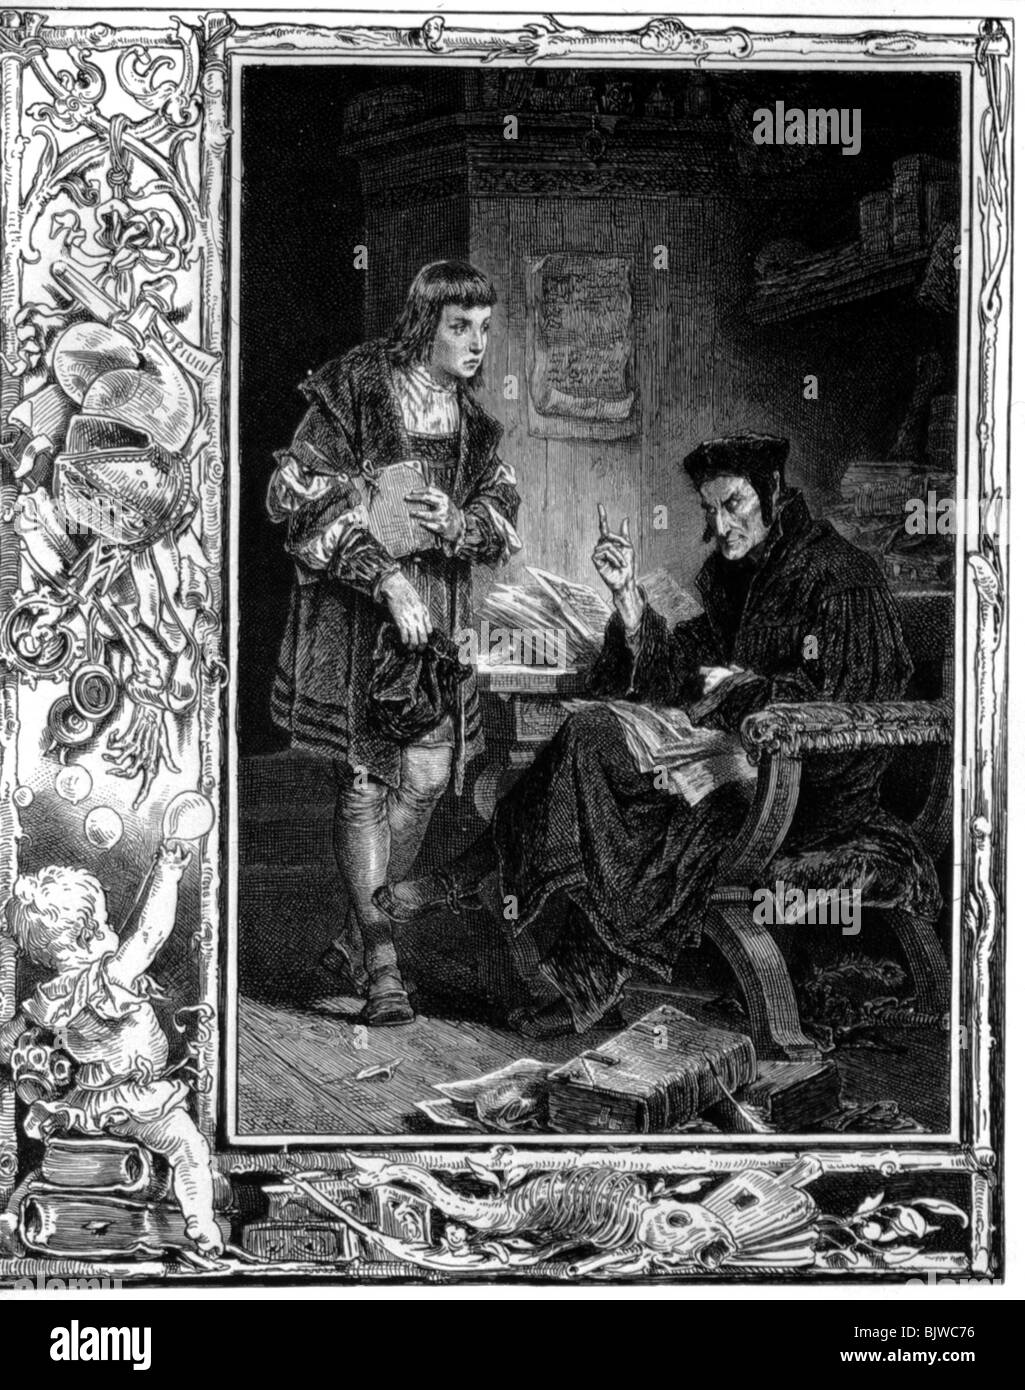 literature, 'Faust I', 4th scene, 'Study', scene with Mephistopheles and scholar, woodcut by W. - Stock Image